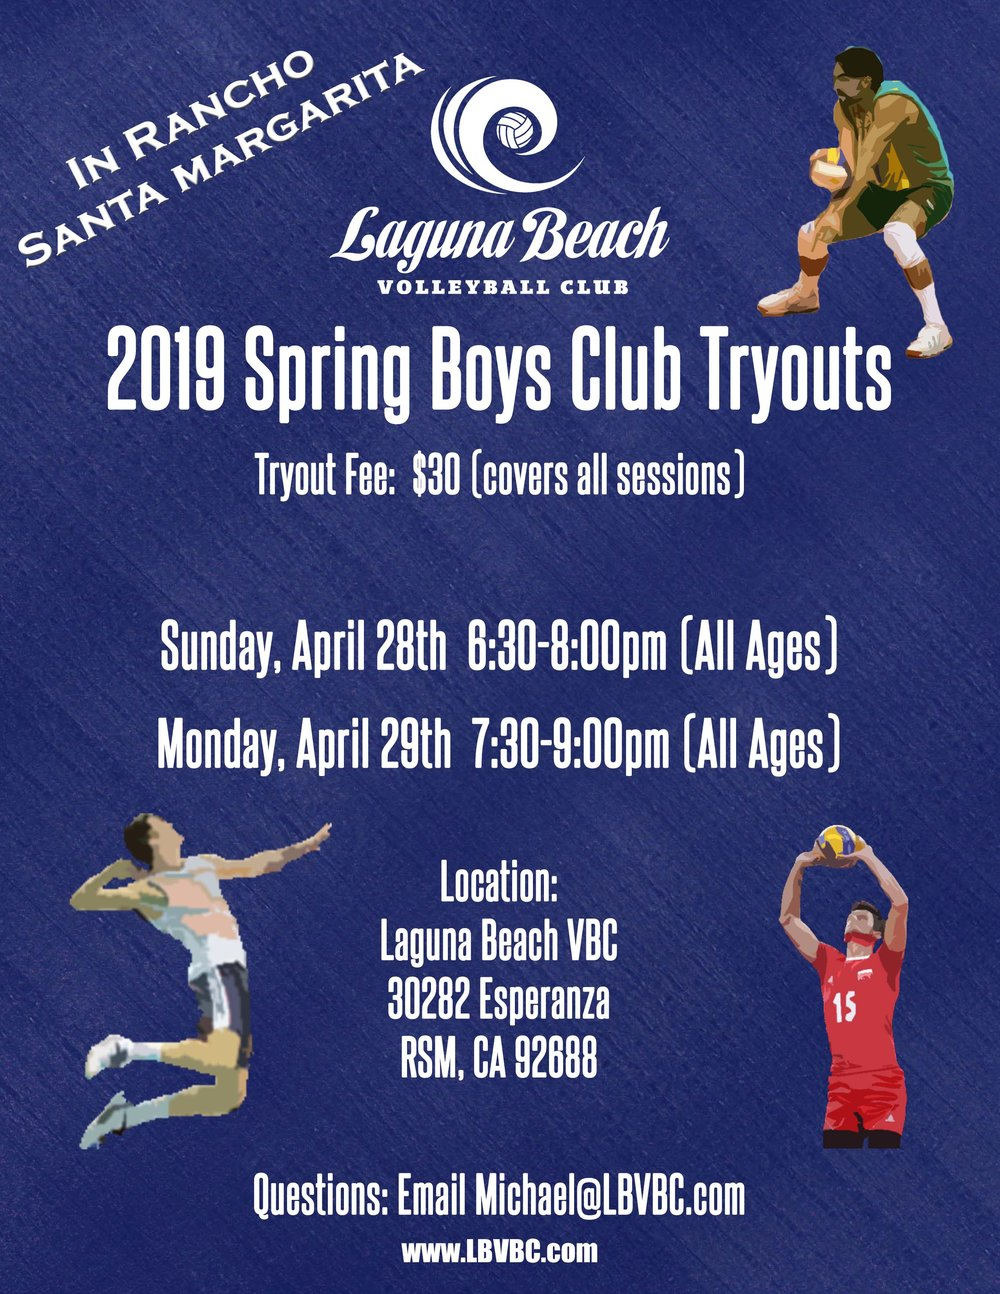 2019 Spring Boys Tryout Announcement.jpg